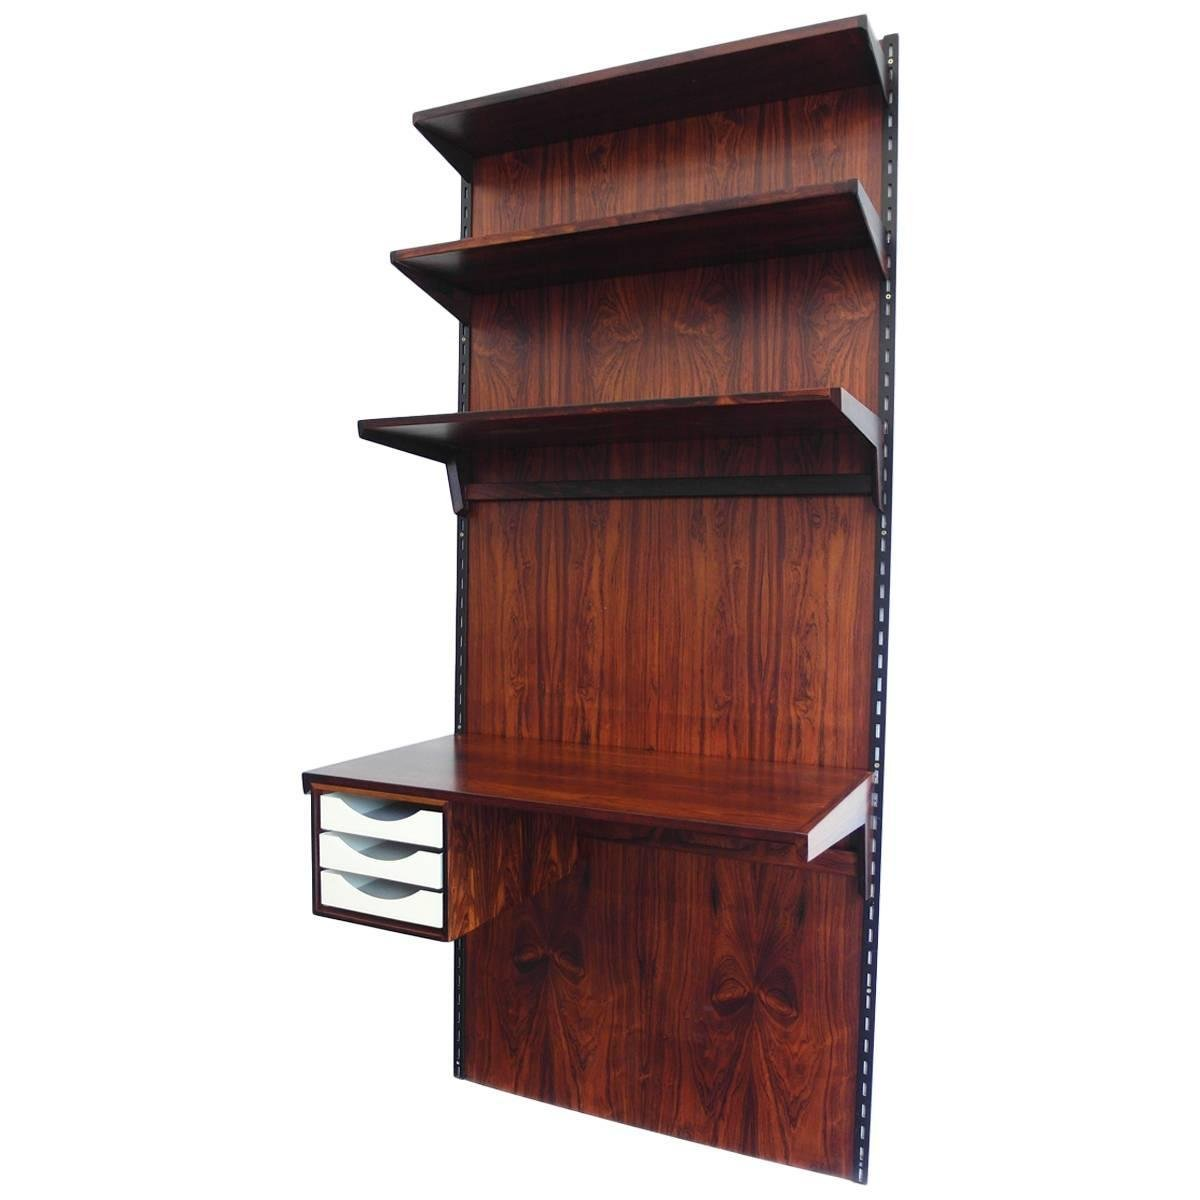 rosewood wall mounted shelving unit with desk by kai. Black Bedroom Furniture Sets. Home Design Ideas